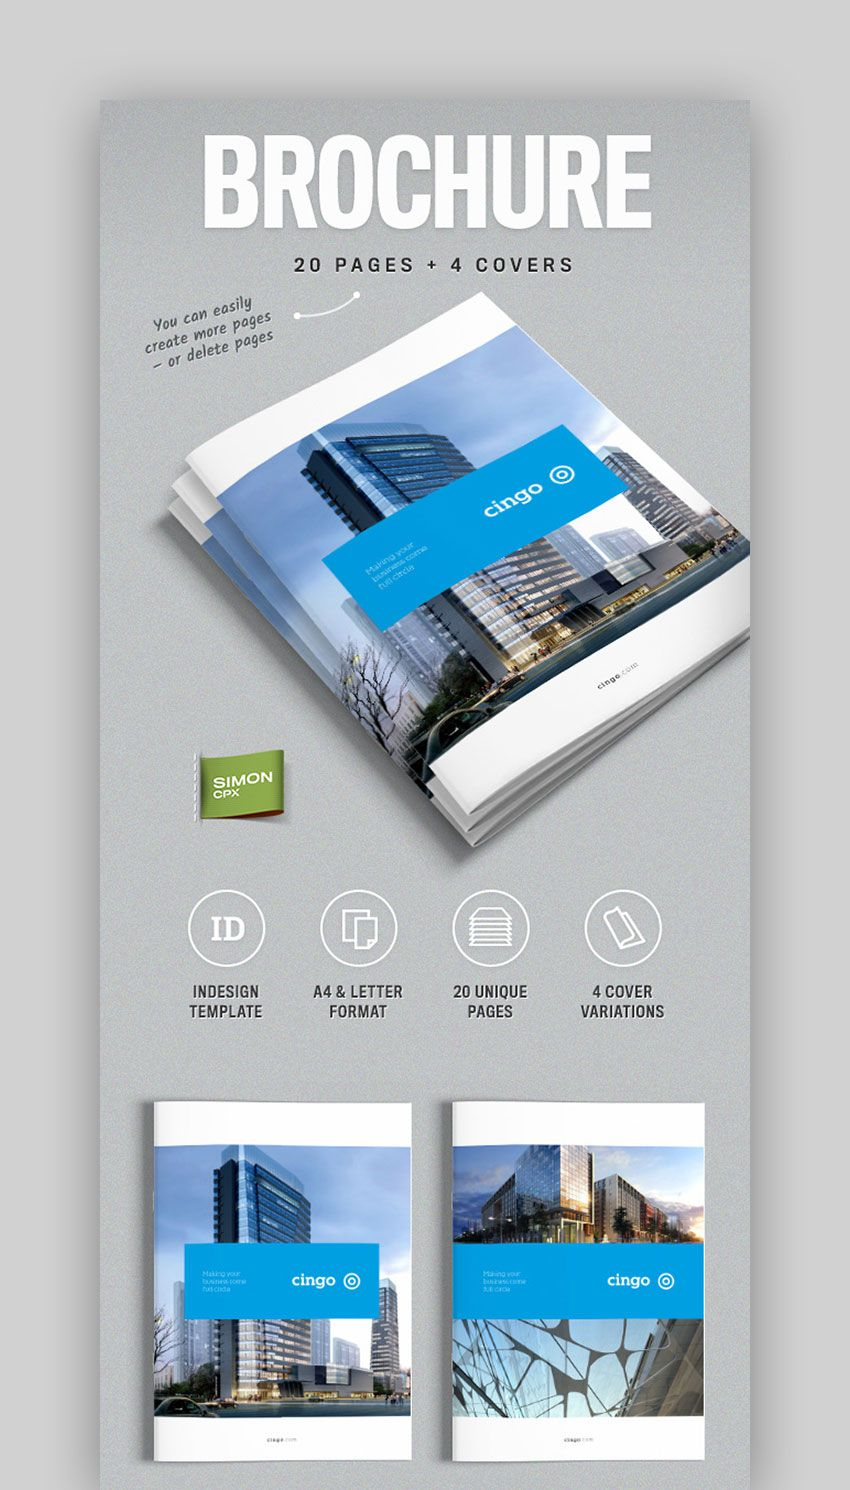 004 Unbelievable Indesign A4 Brochure Template Free Download High Resolution Full